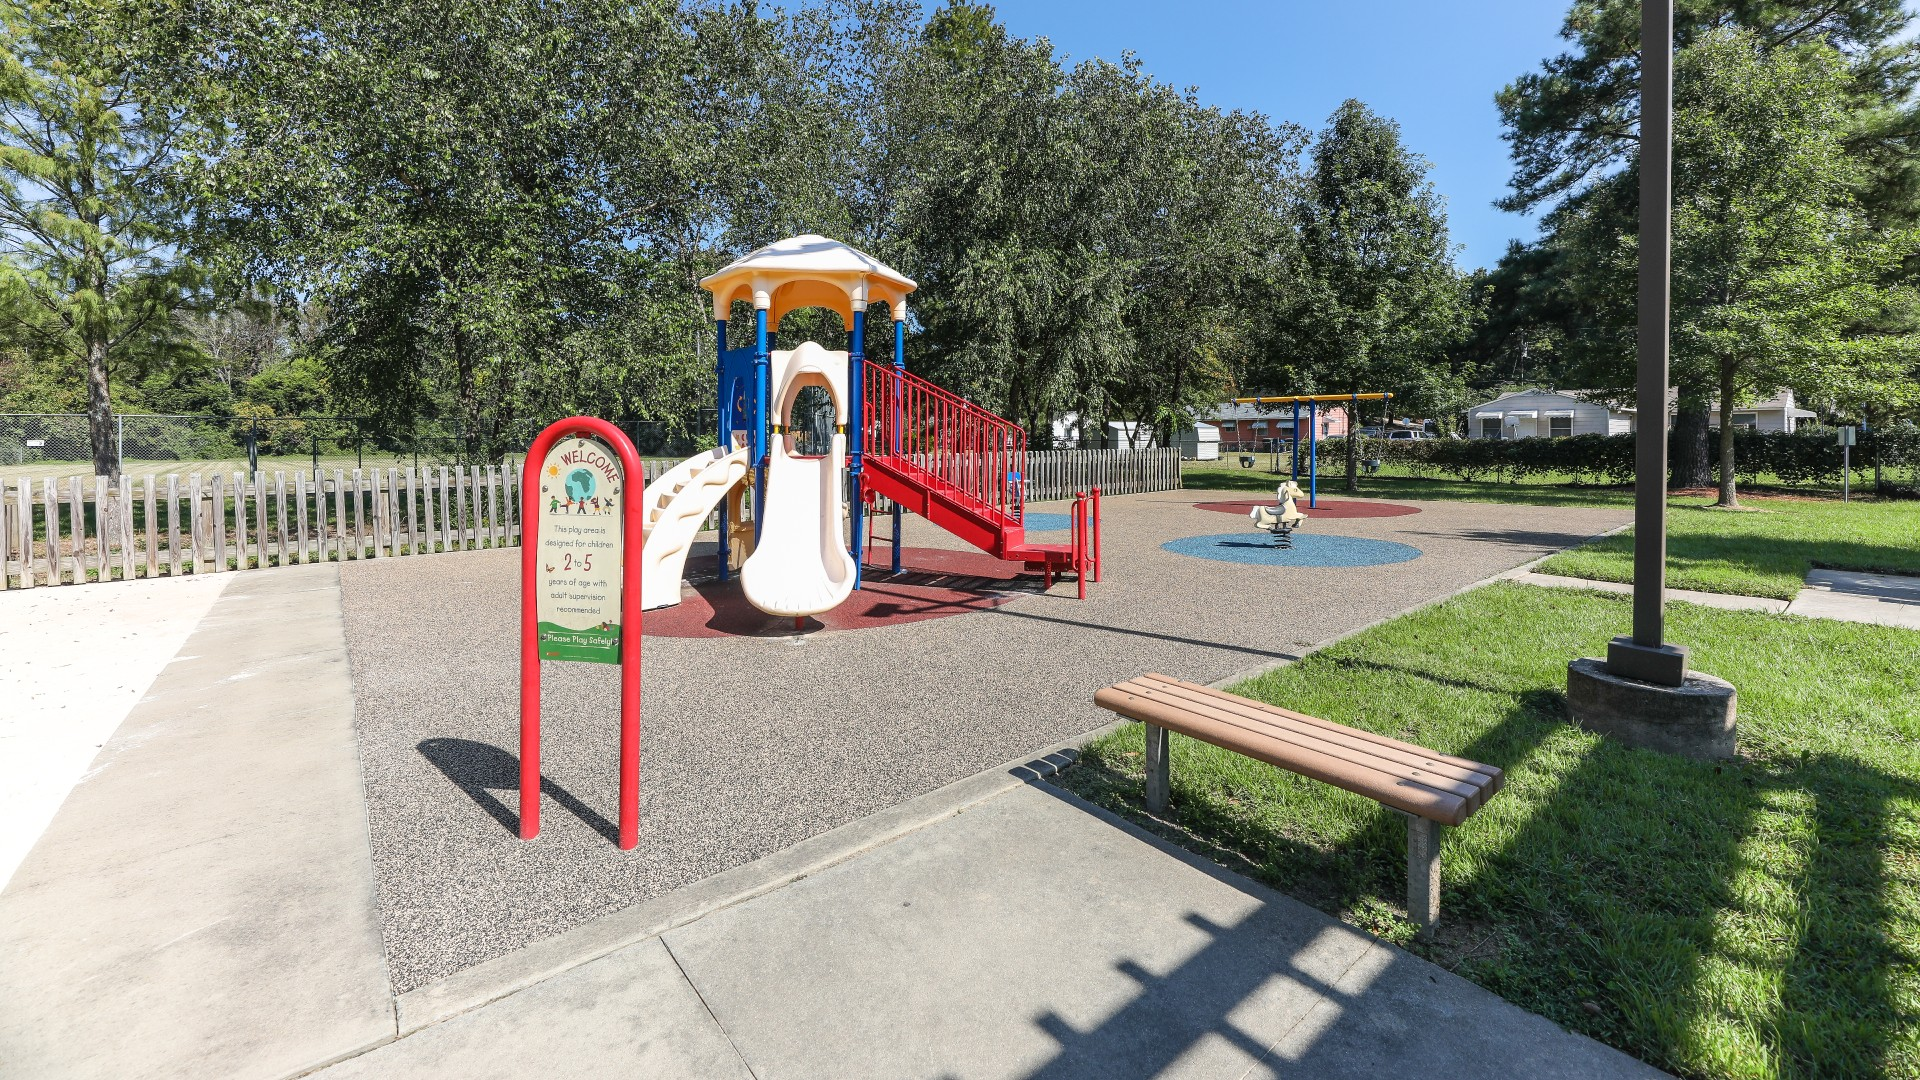 A smaller playground for younger kids